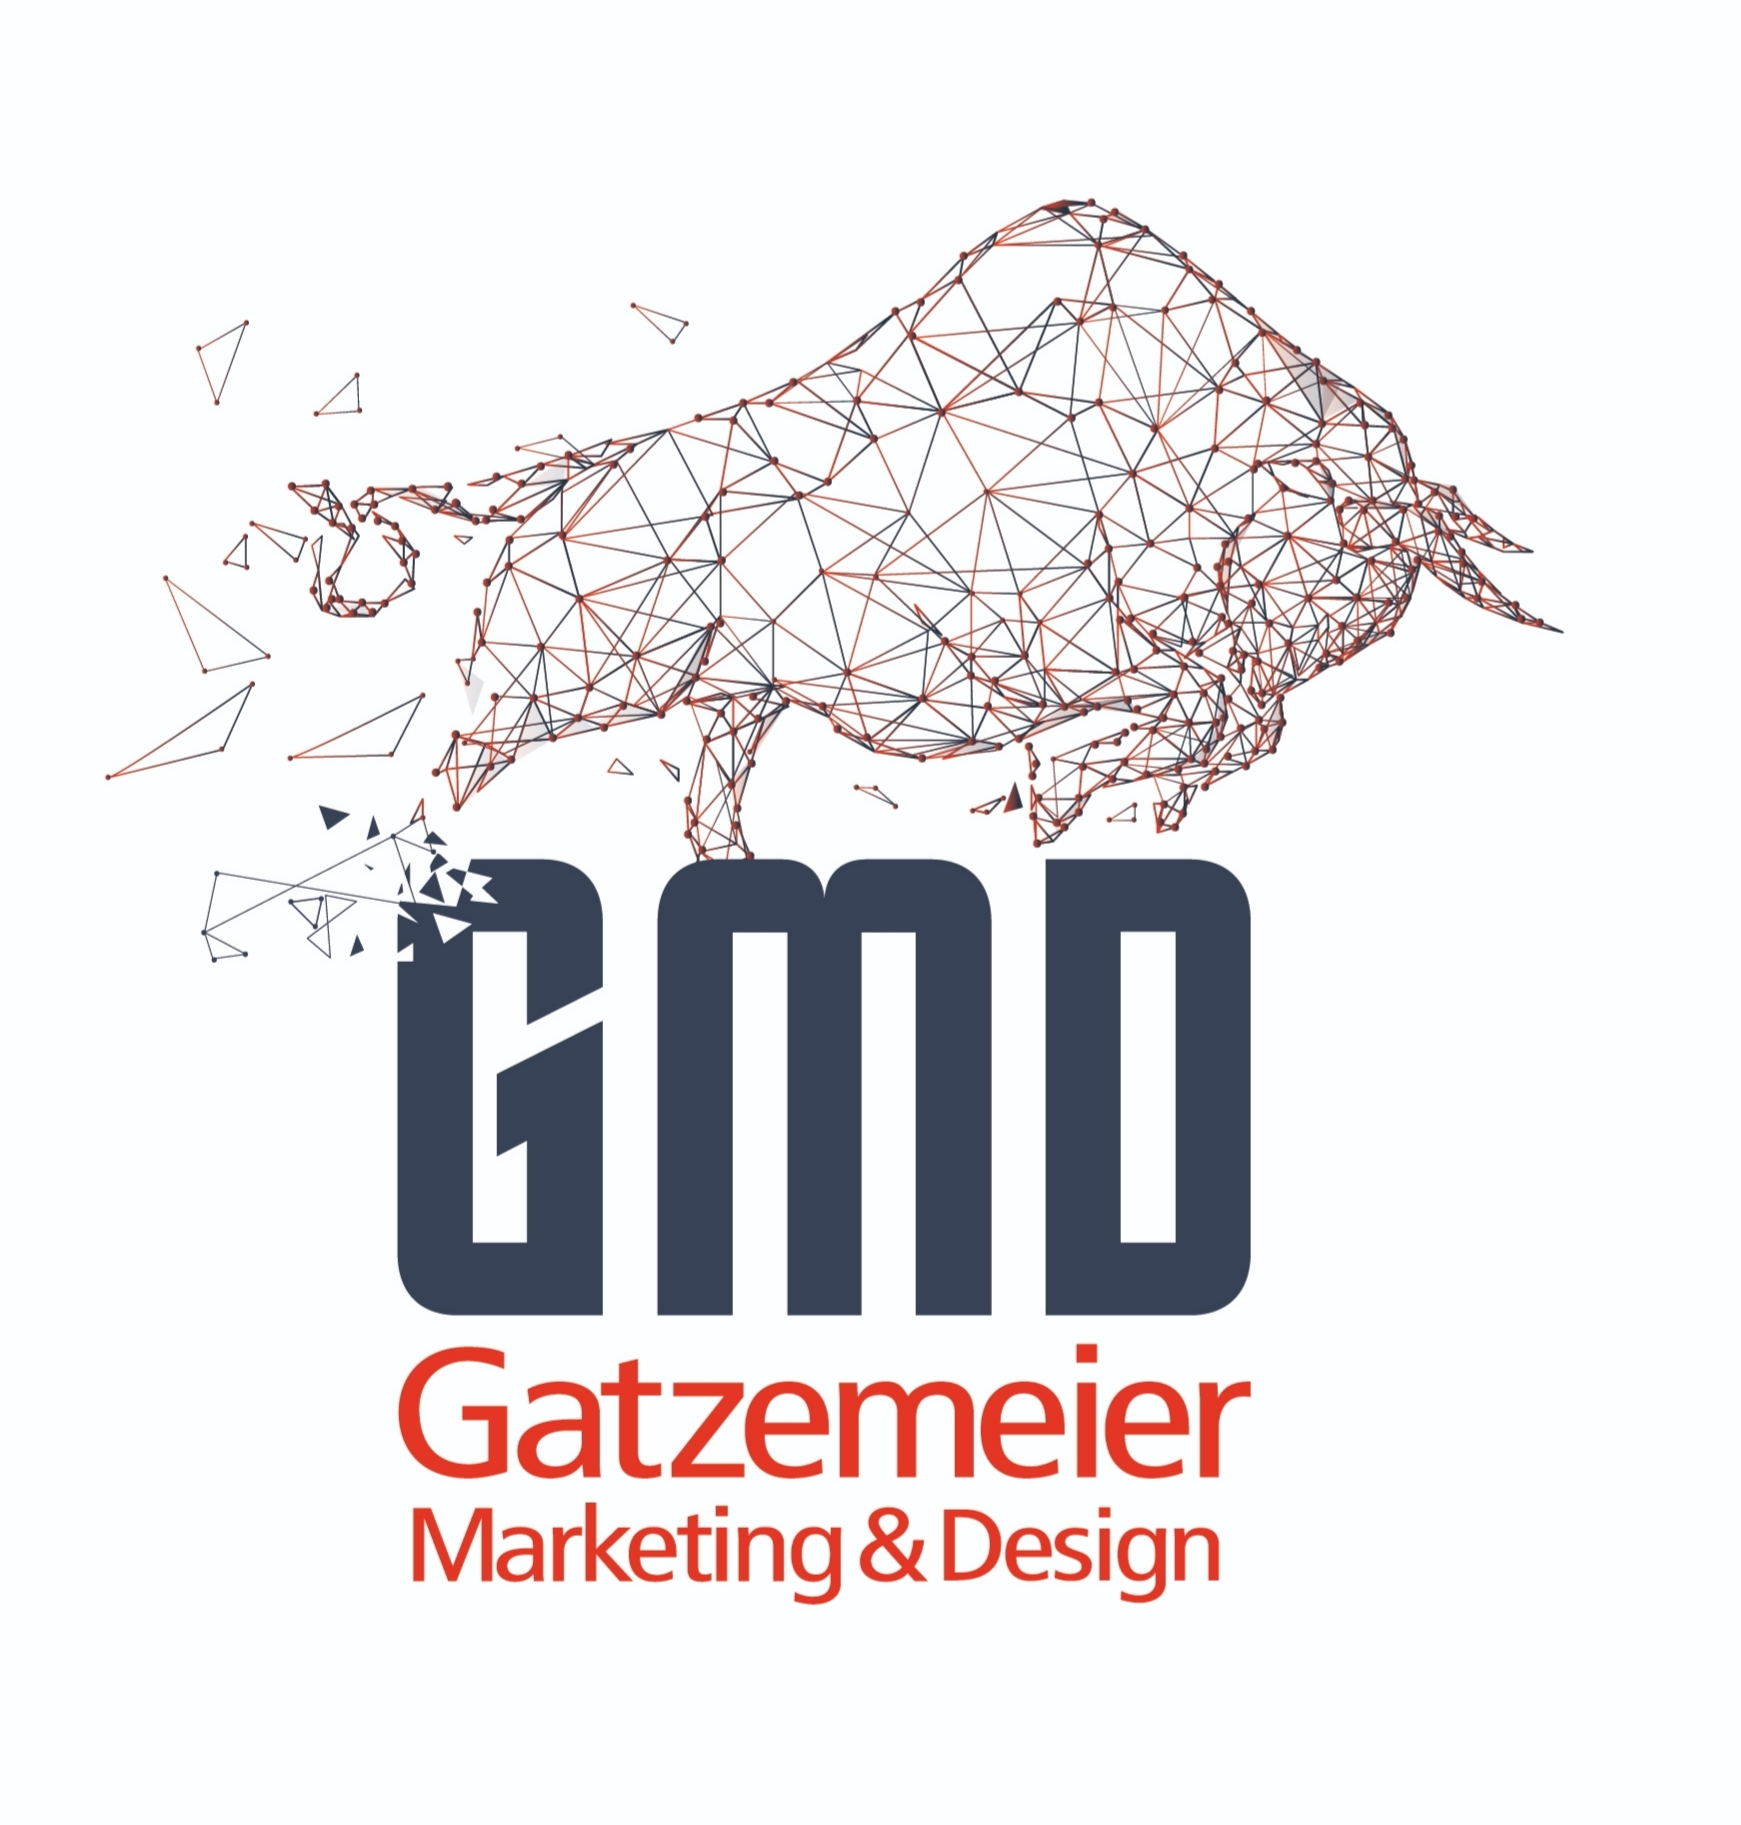 Gatzemeier Marketing & Design